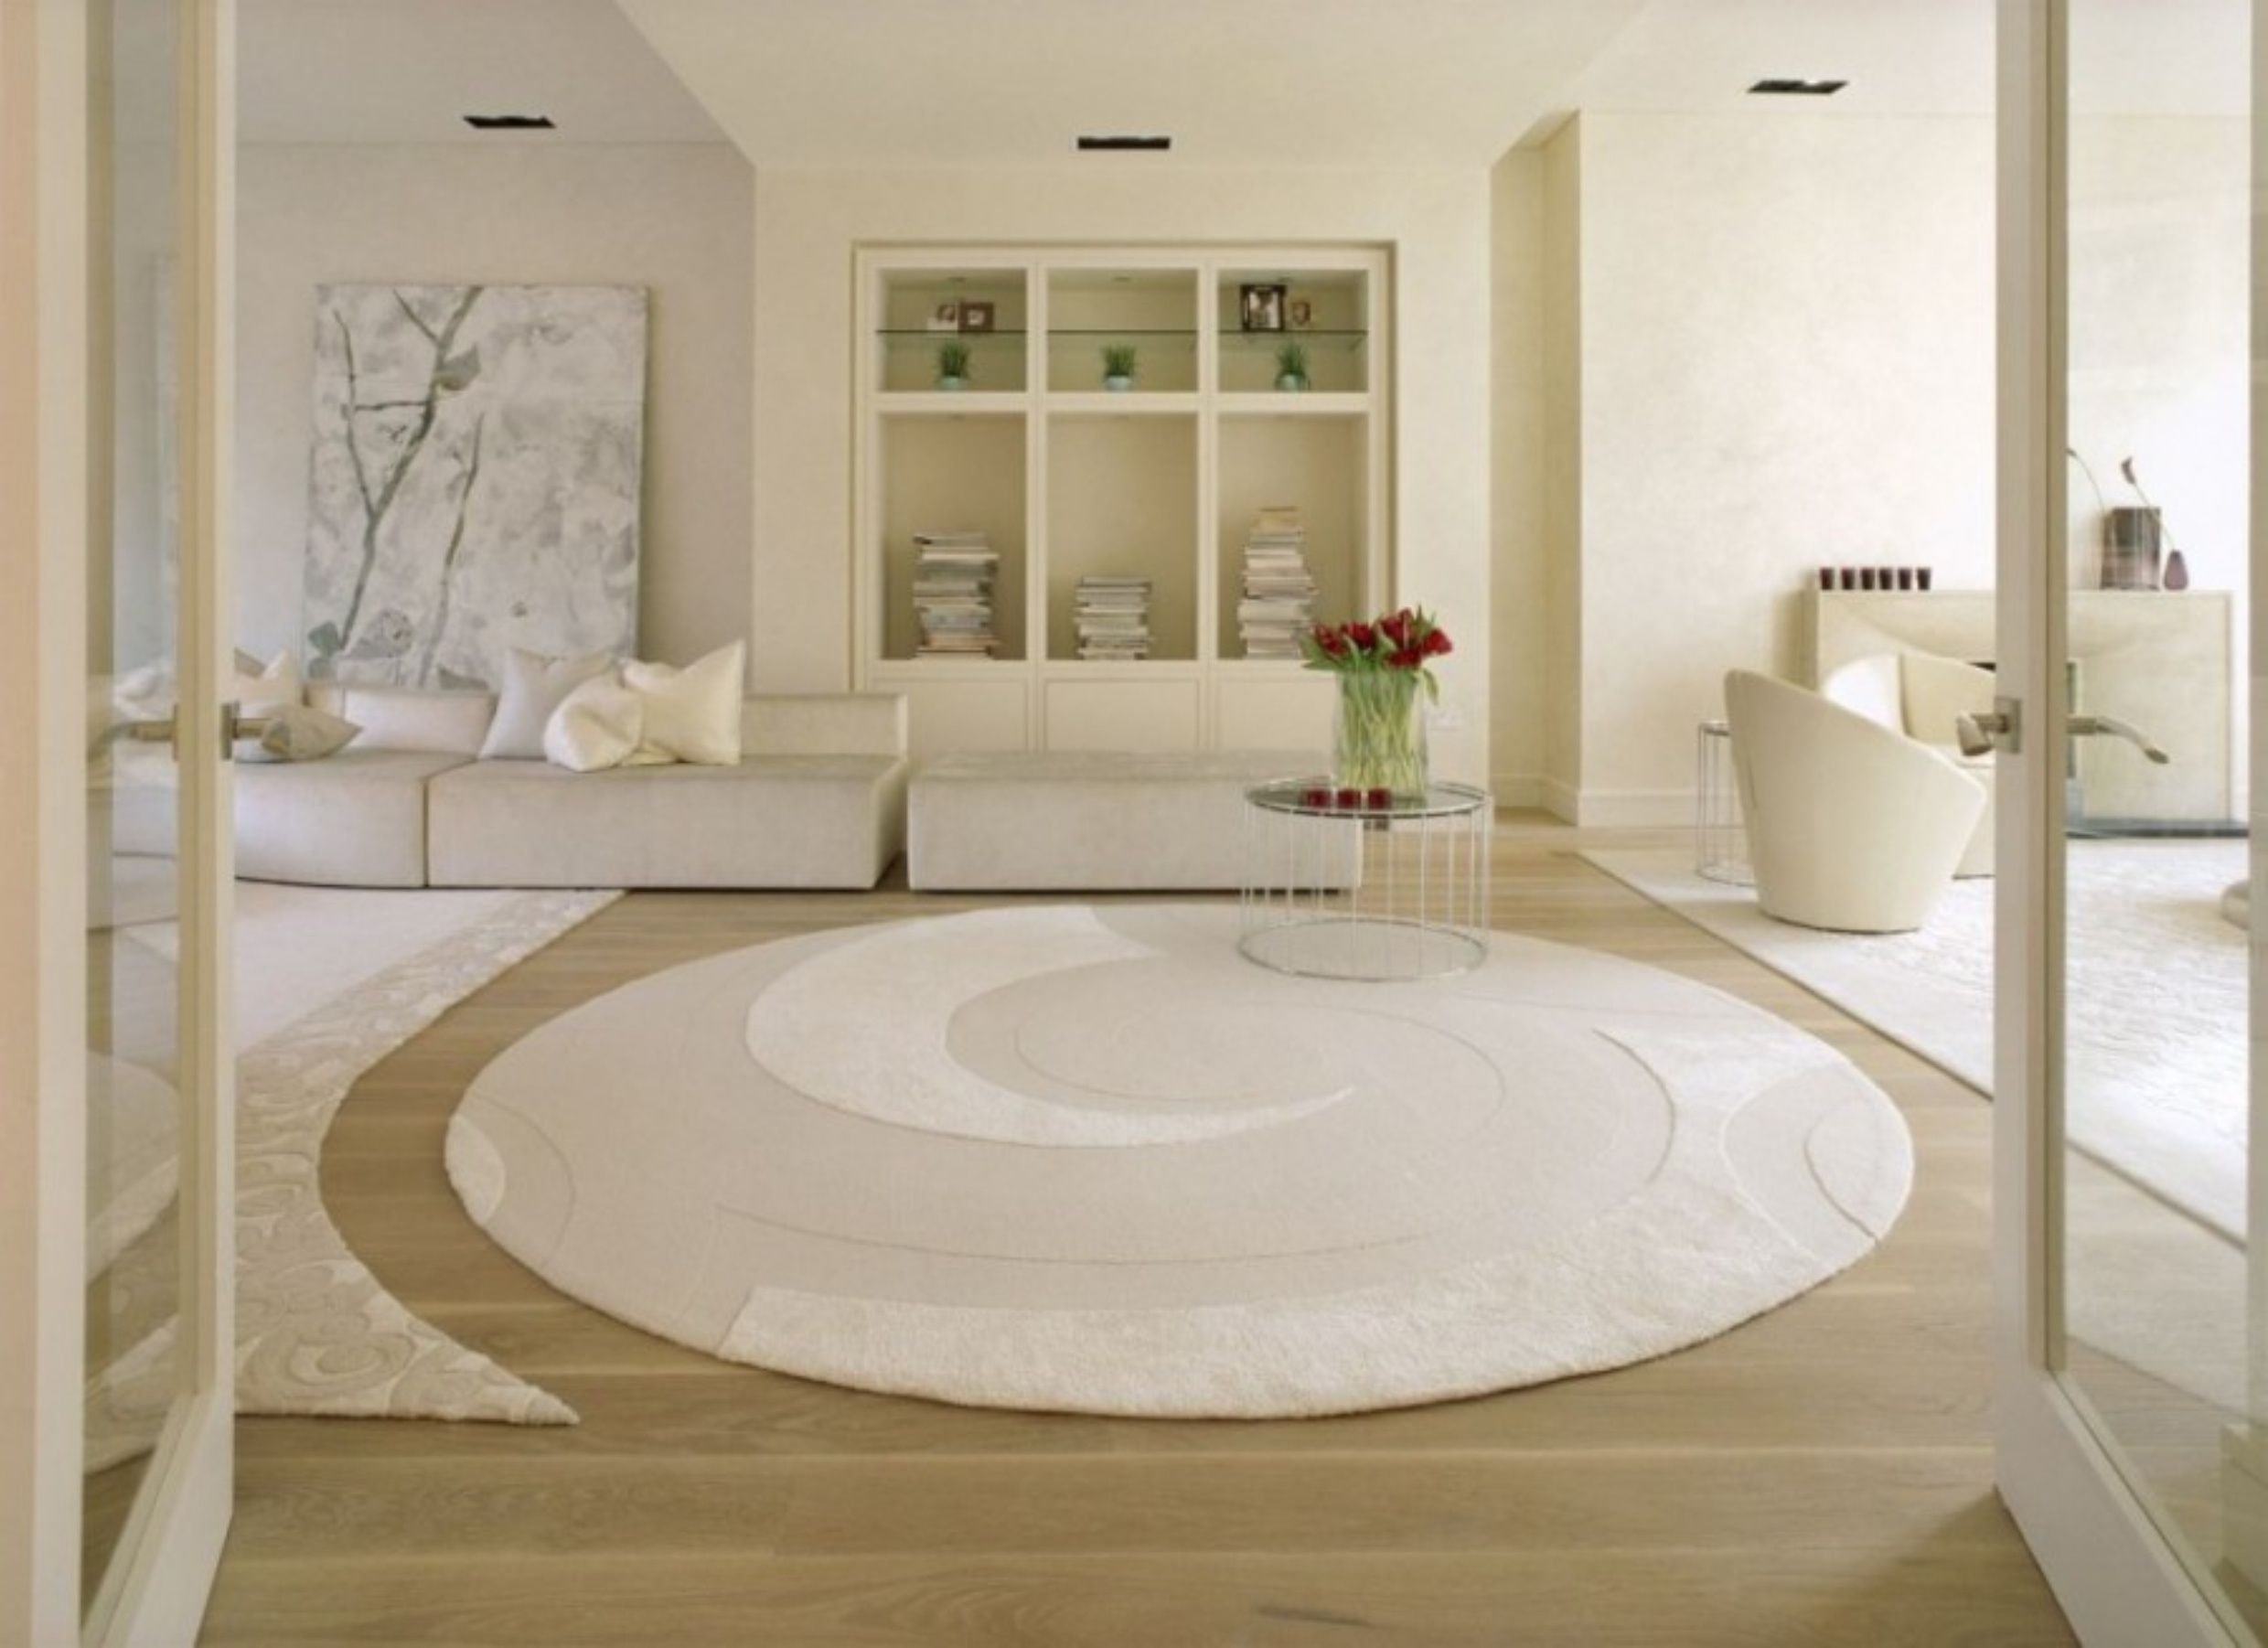 white round extra large bathroom rug | favorite inside spaces